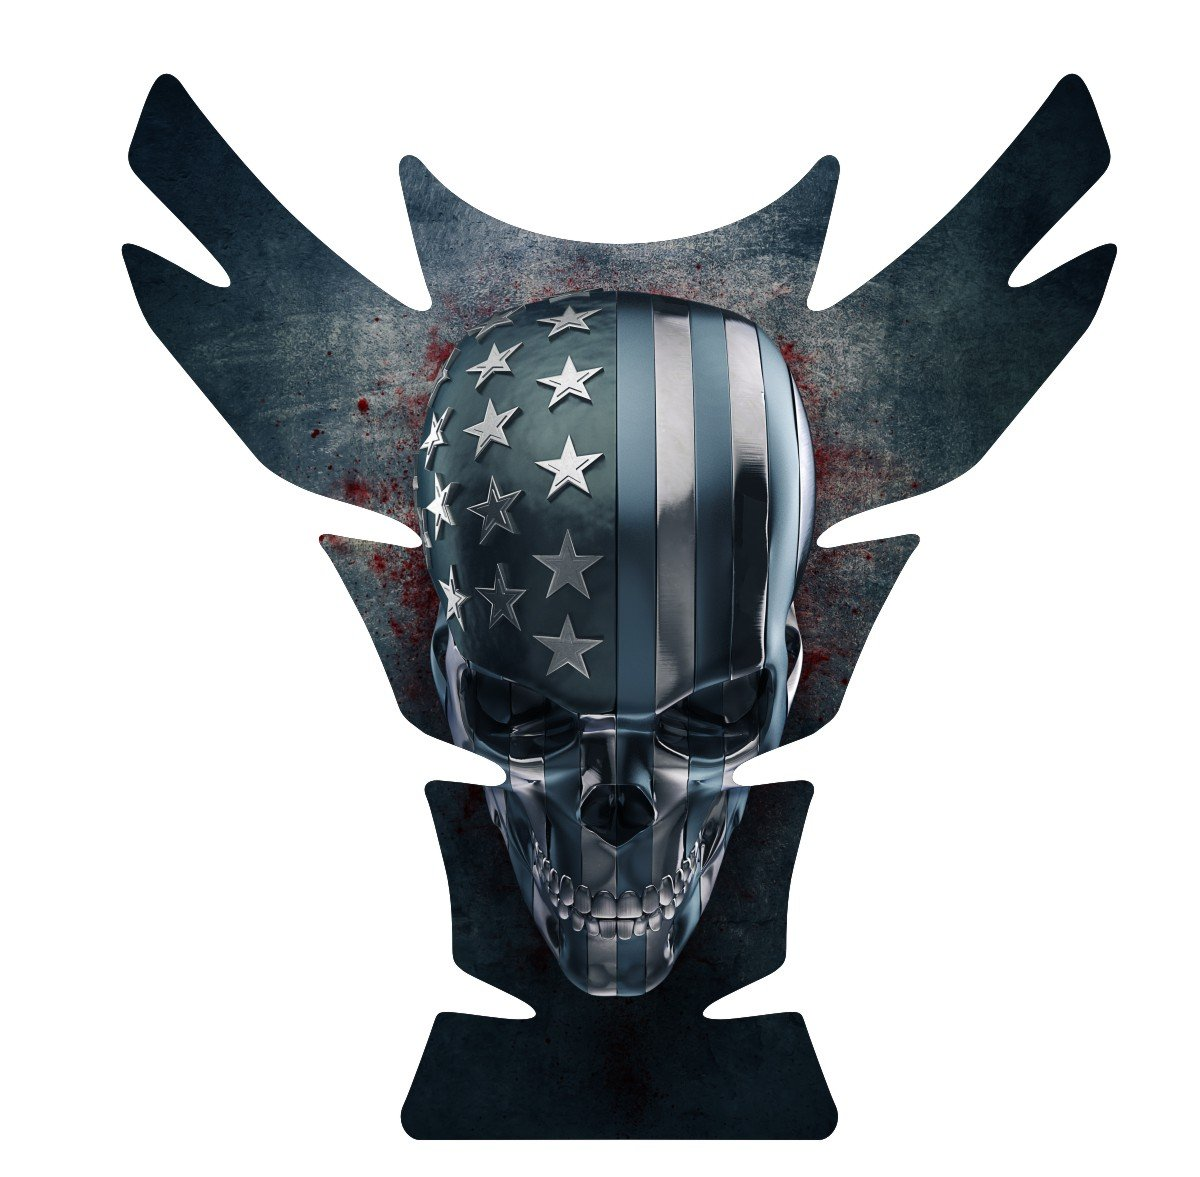 Can Am Can-AM Spyder F3 American Grunge Skull Motorcycle Tank Pad Protector size 10' tall x 9.3' wide Immortal Graphix COMINU025238